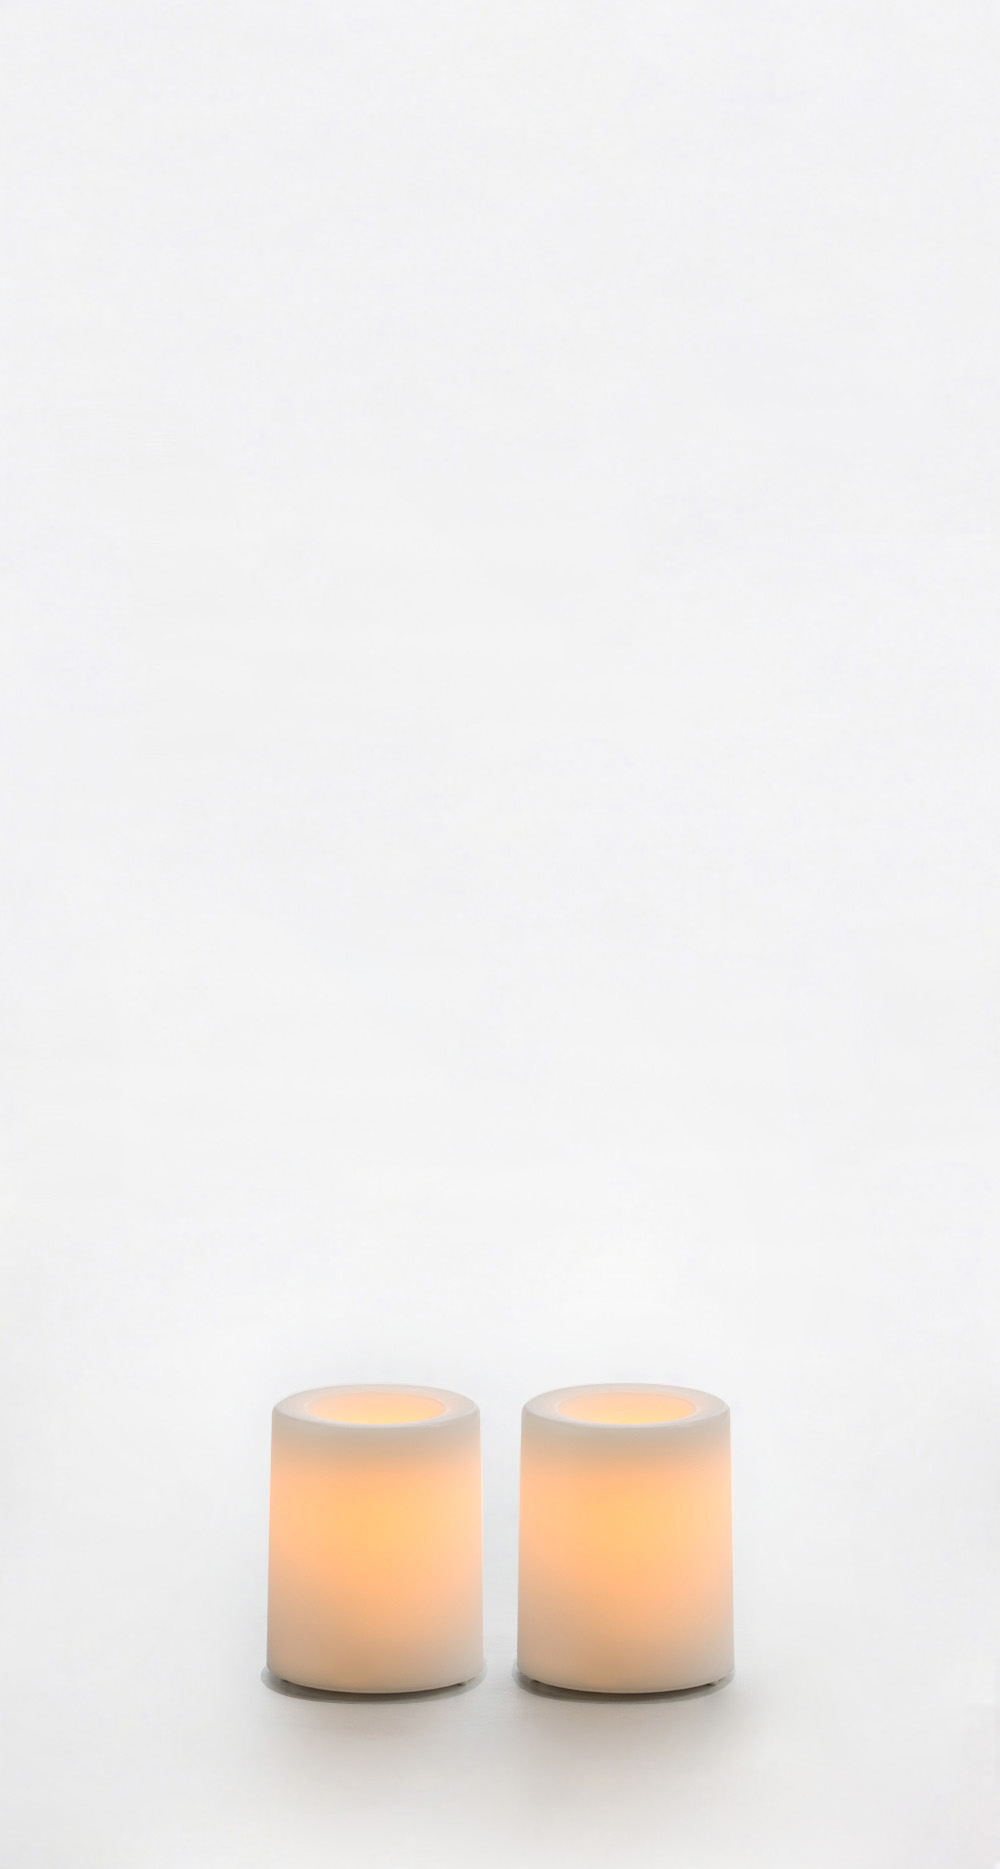 1.75 Inch Flameless Wax Finish Votive Candles - White Unscented - 2 Pack